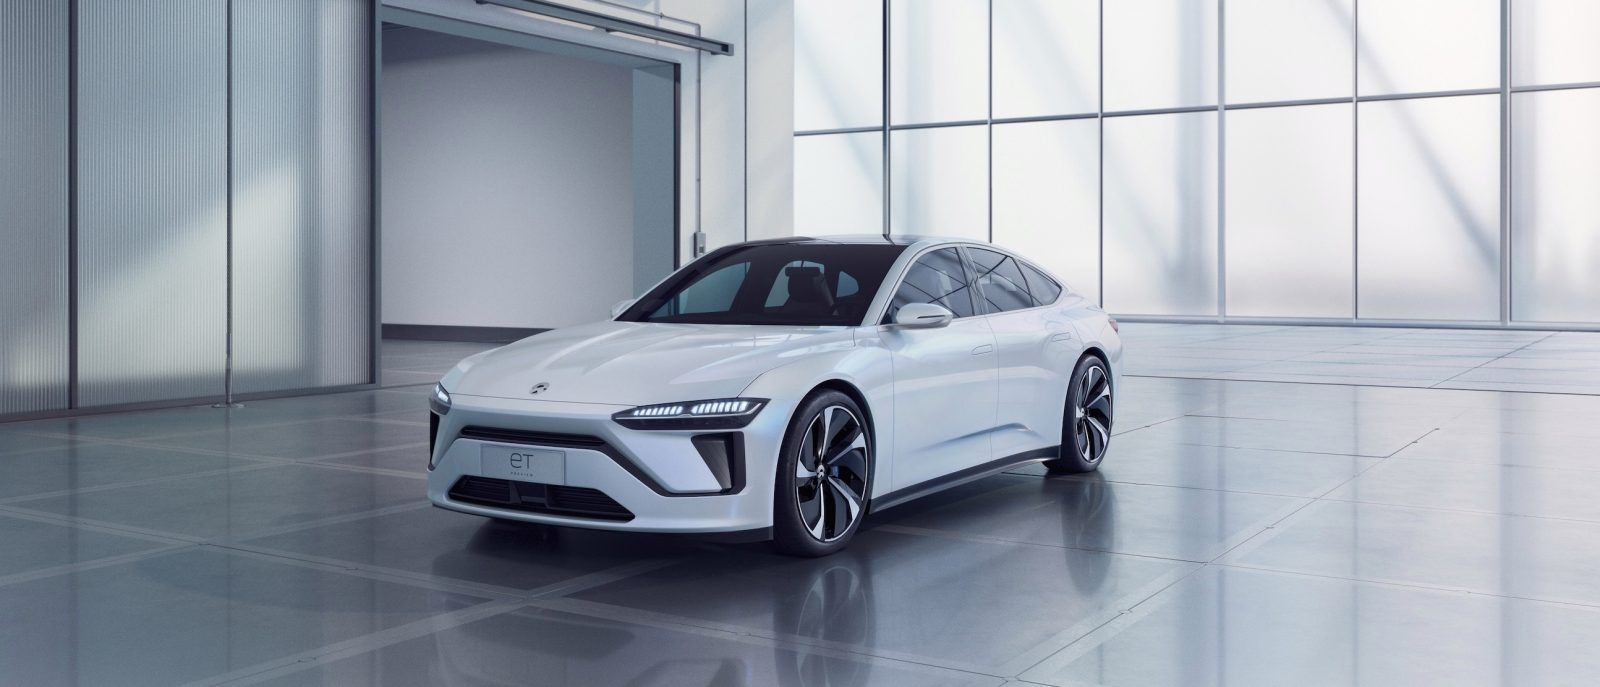 NIO unveils new allelectric sedan and fastcharging